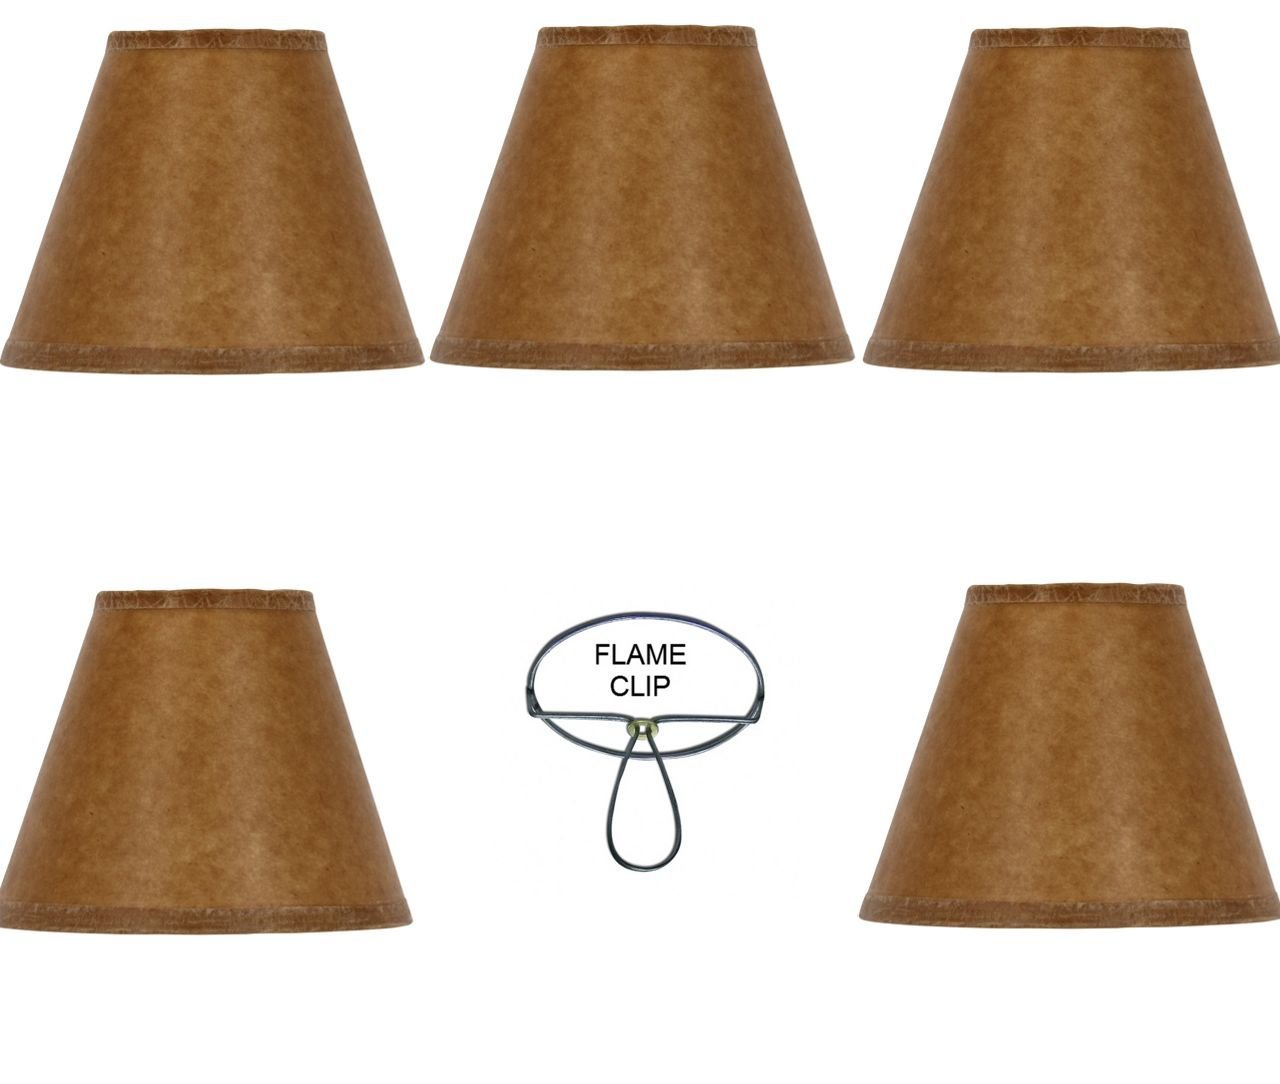 Cheap paper lamp shades find paper lamp shades deals on line at get quotations mini chandelier shades clip on small lamp shades set of five oiled craft paper aloadofball Image collections